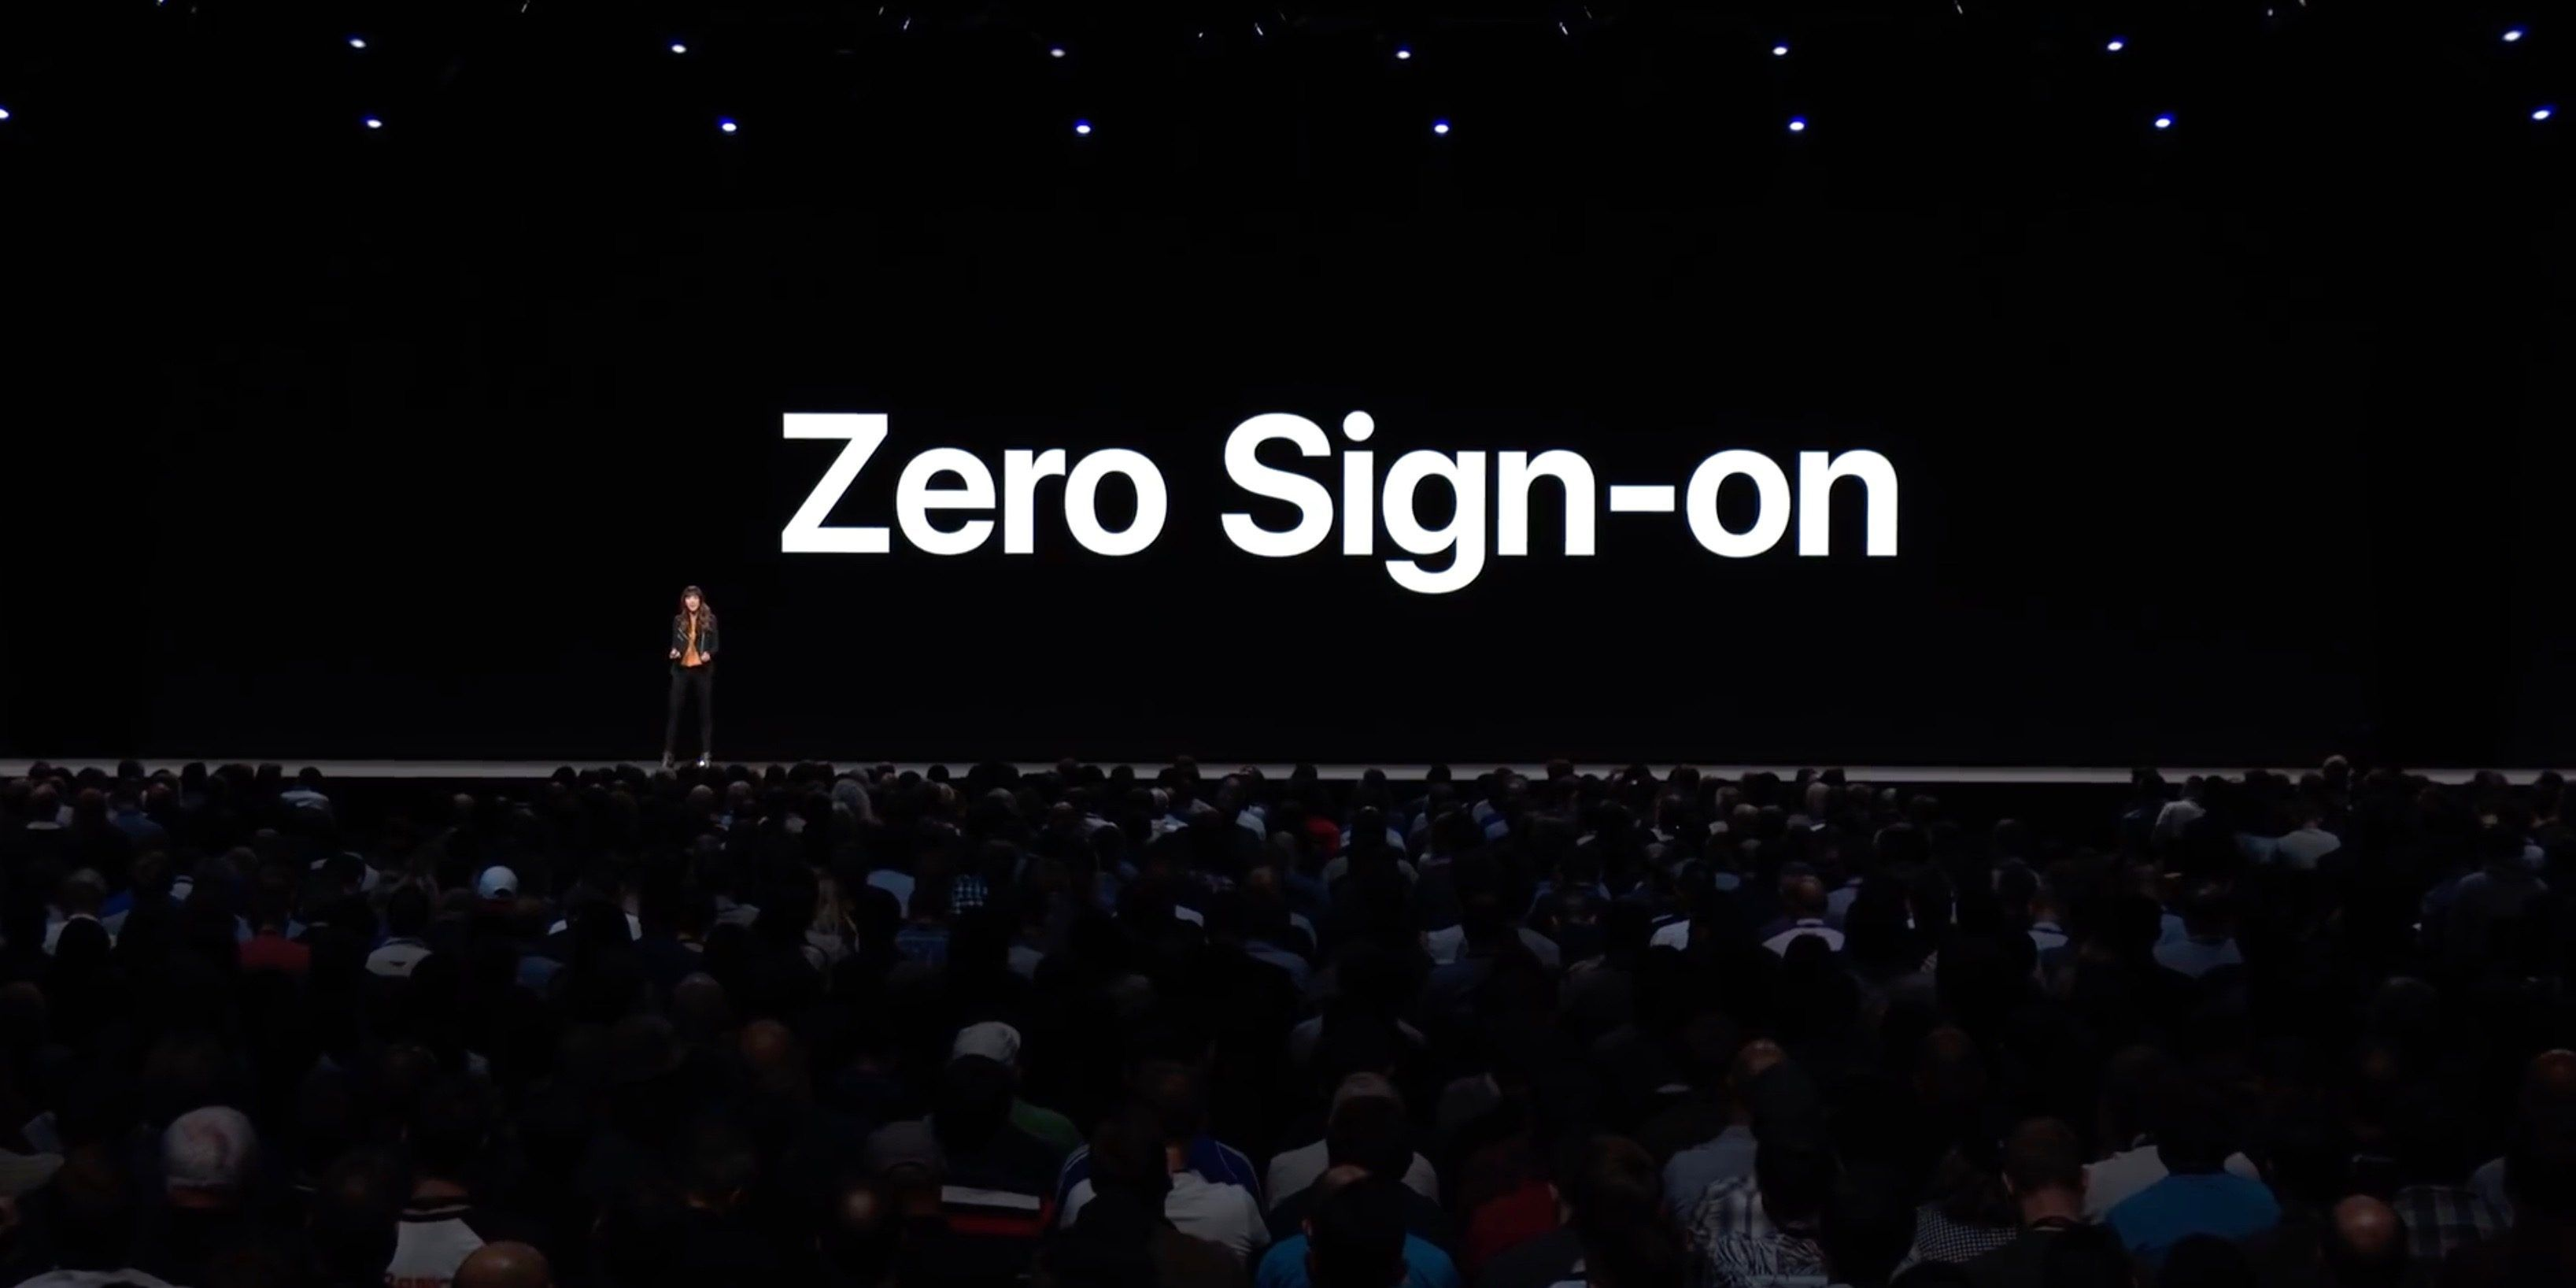 Charter Spectrum Apple TV app & Zero Sign On support